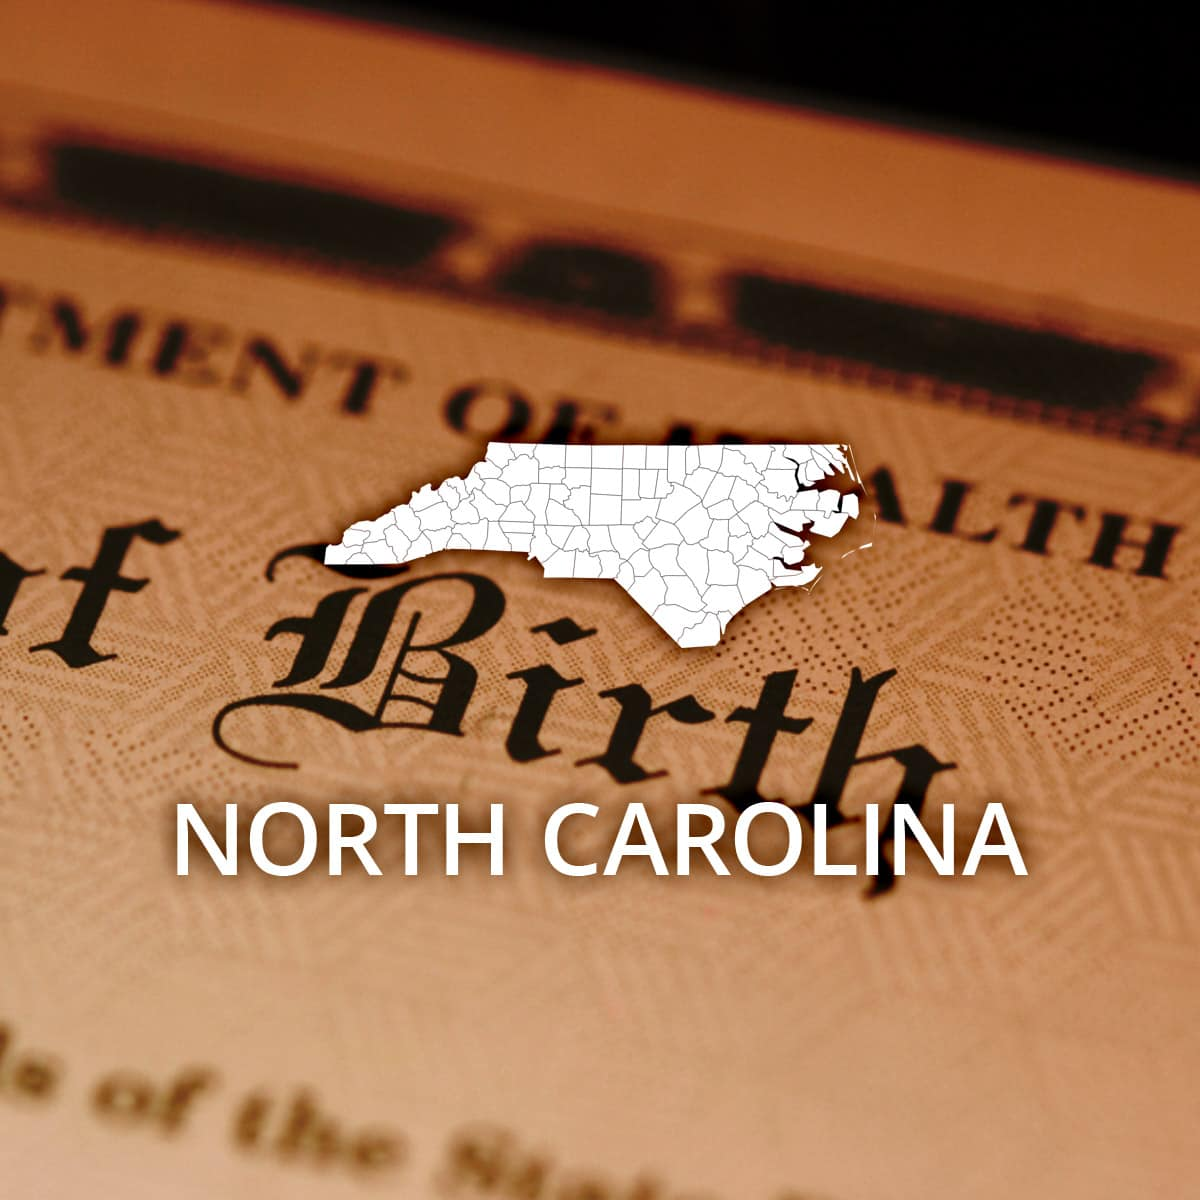 Where to Obtain a North Carolina Birth Certificate